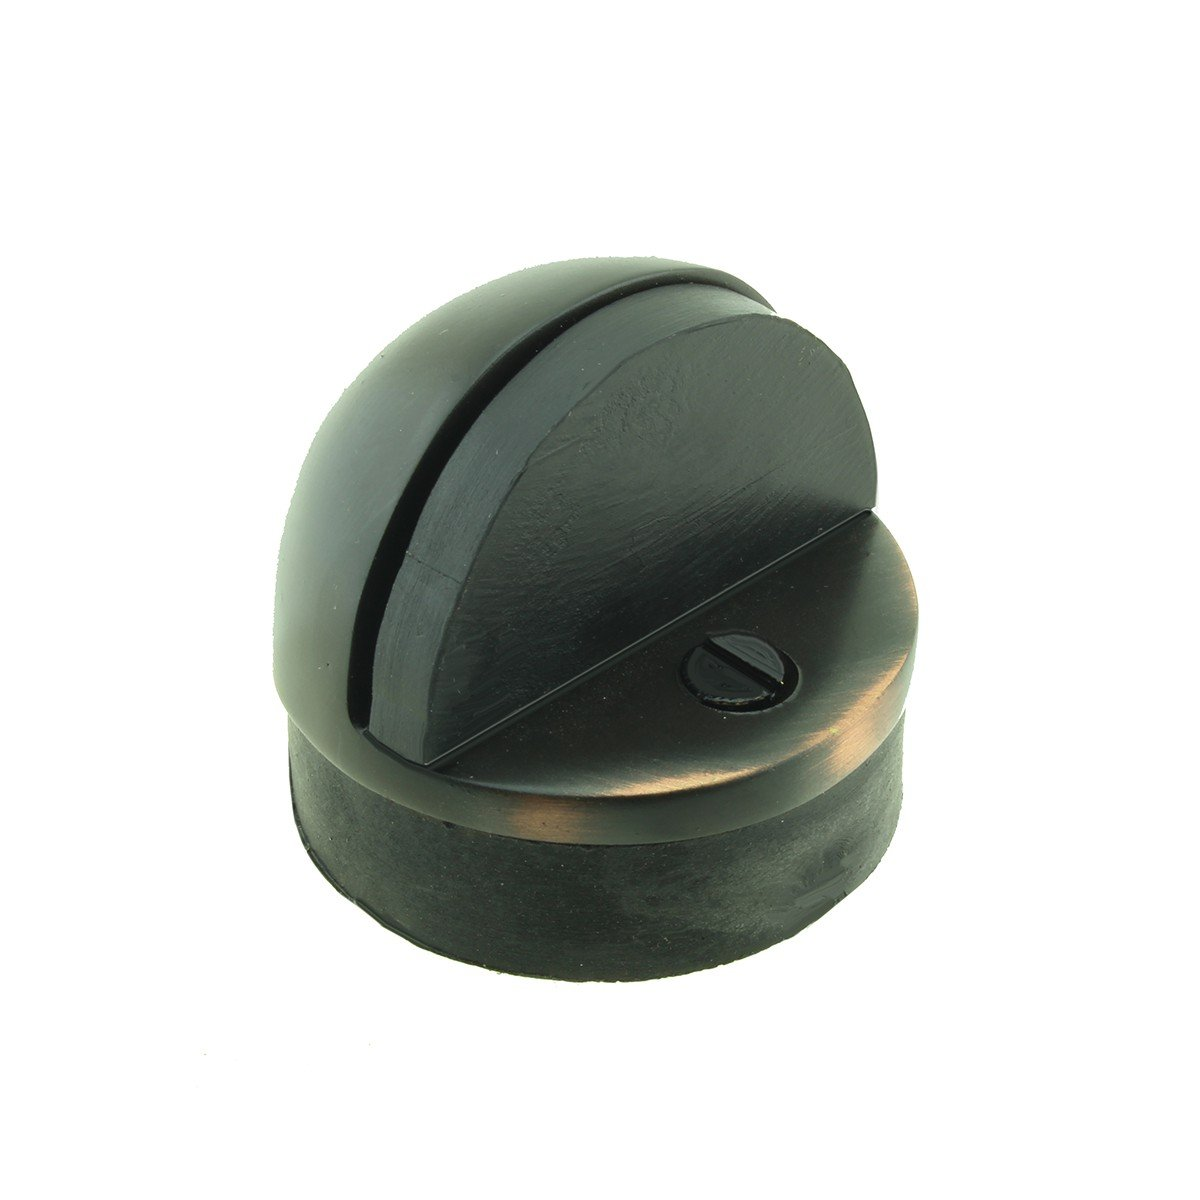 Oil Rubbed Bronze Door Stopper Adjustable Height Floor Mount Door Stop